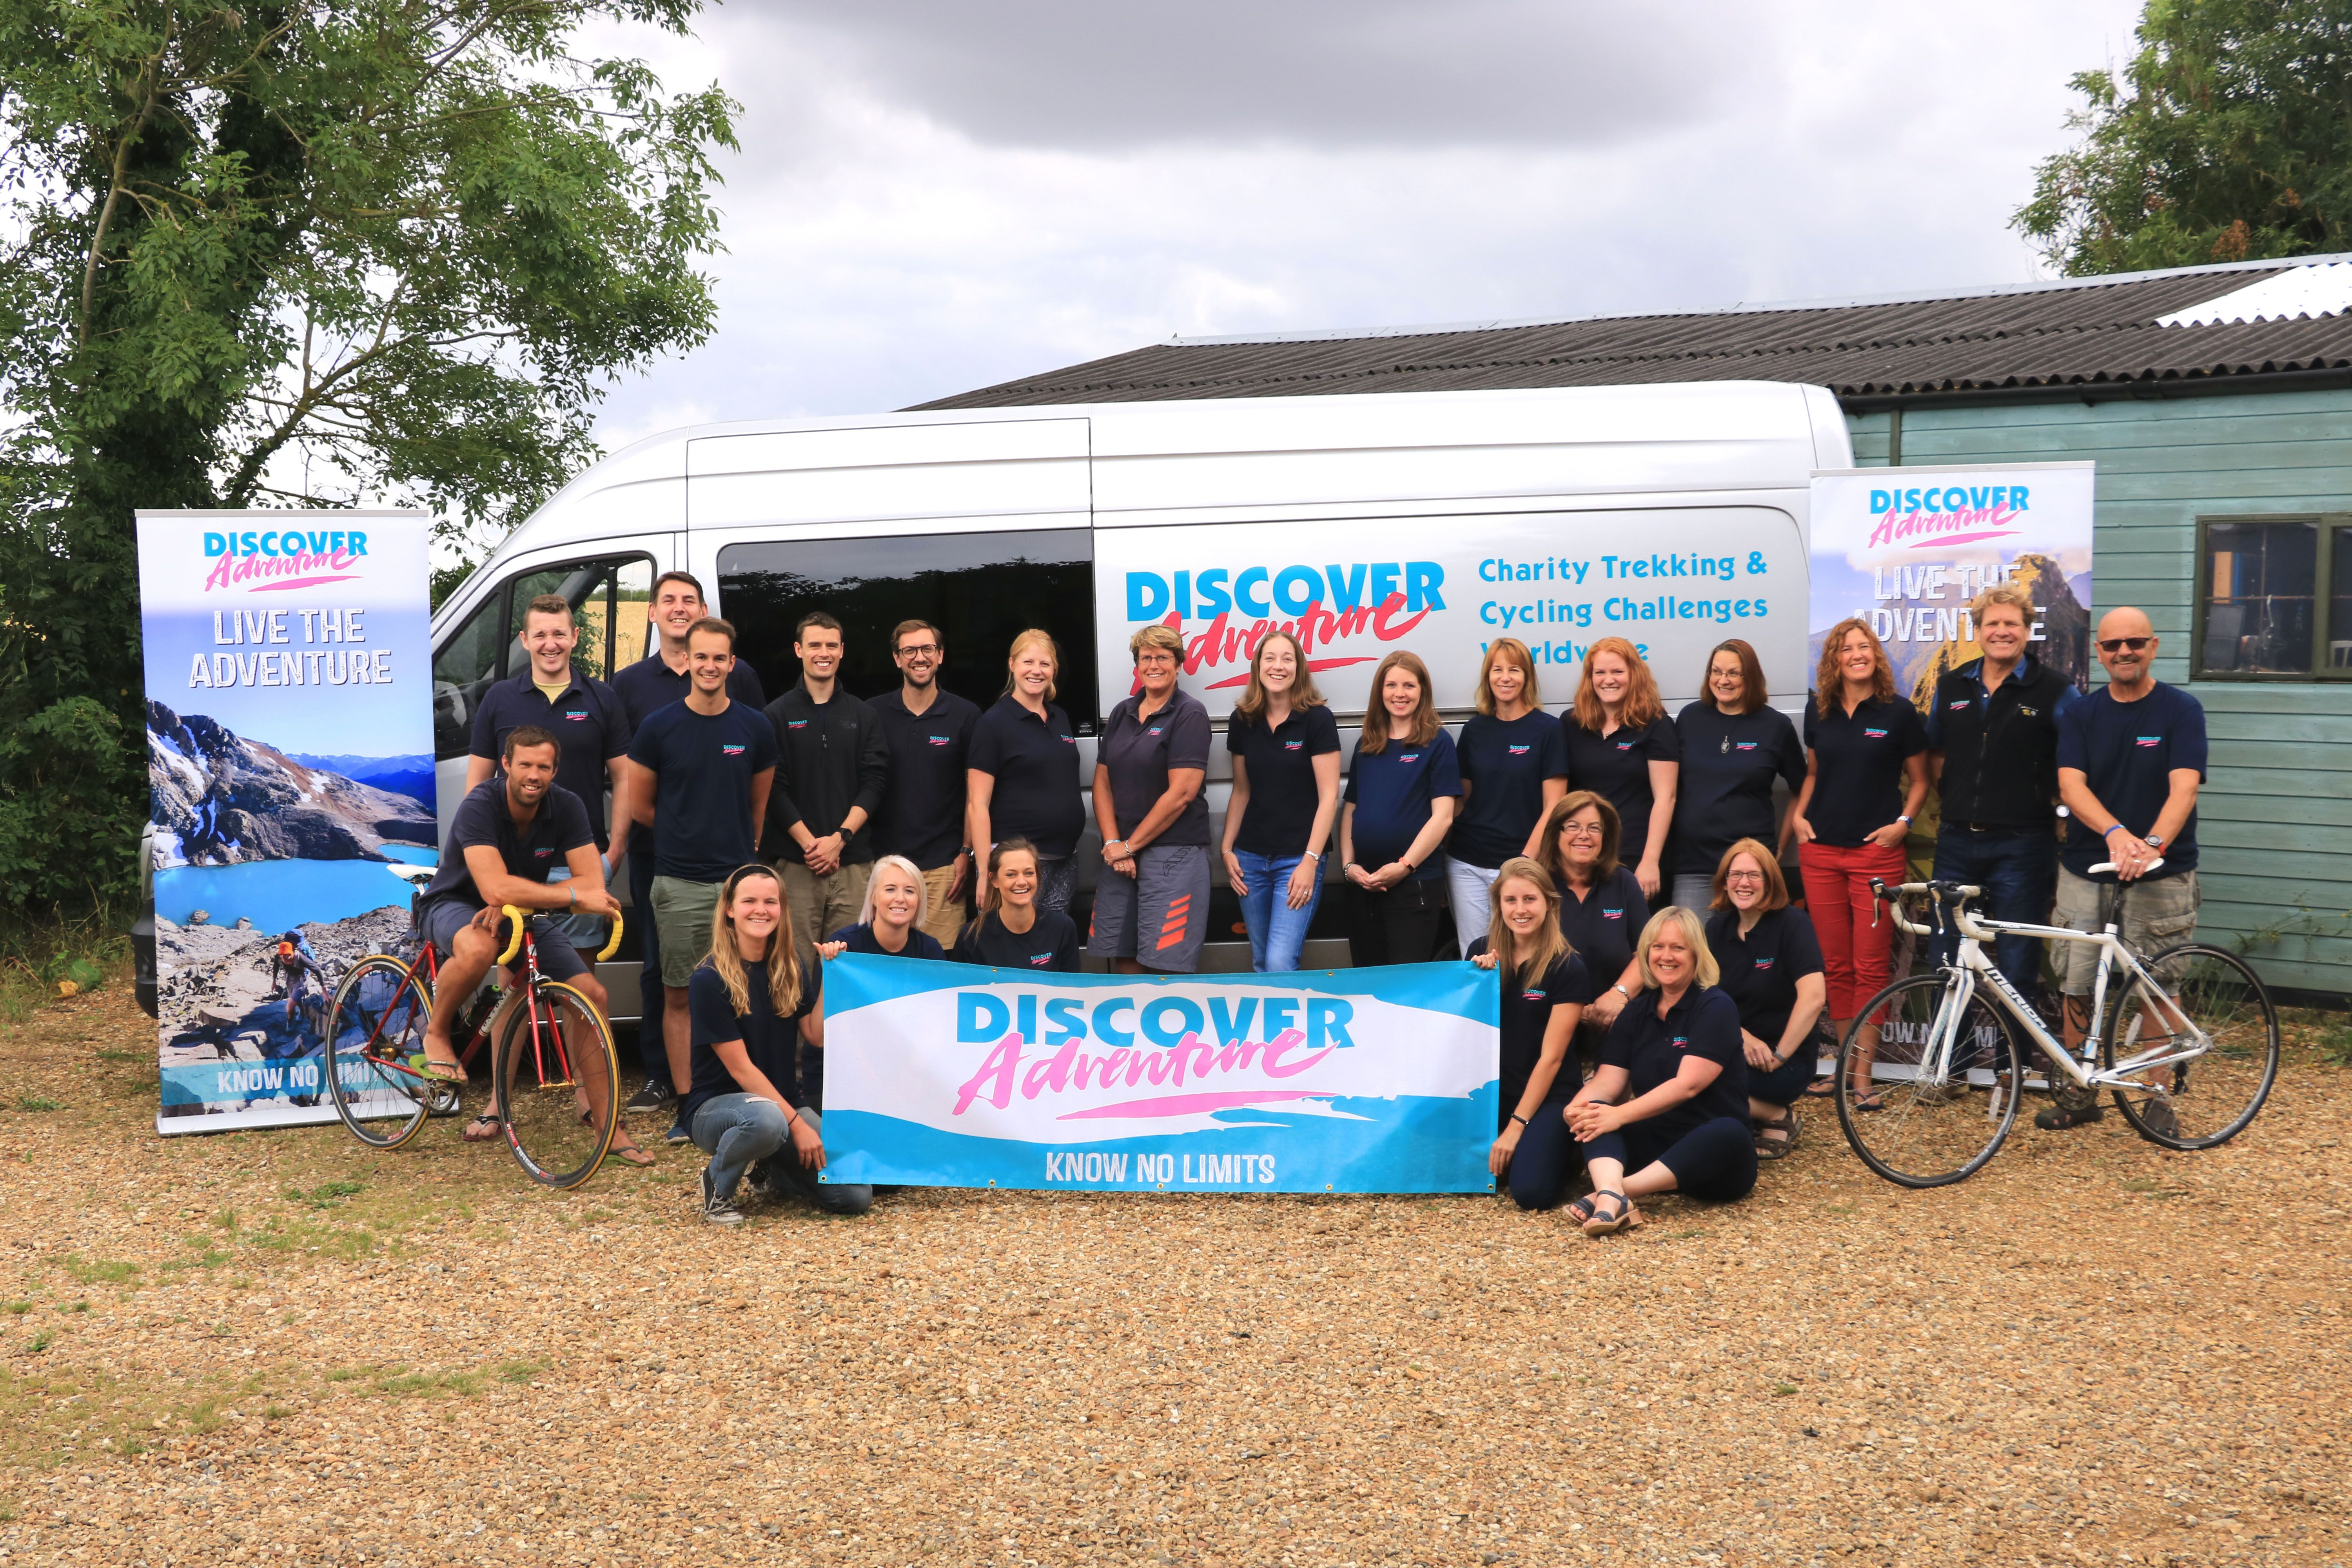 The Discover Adventure Office Team